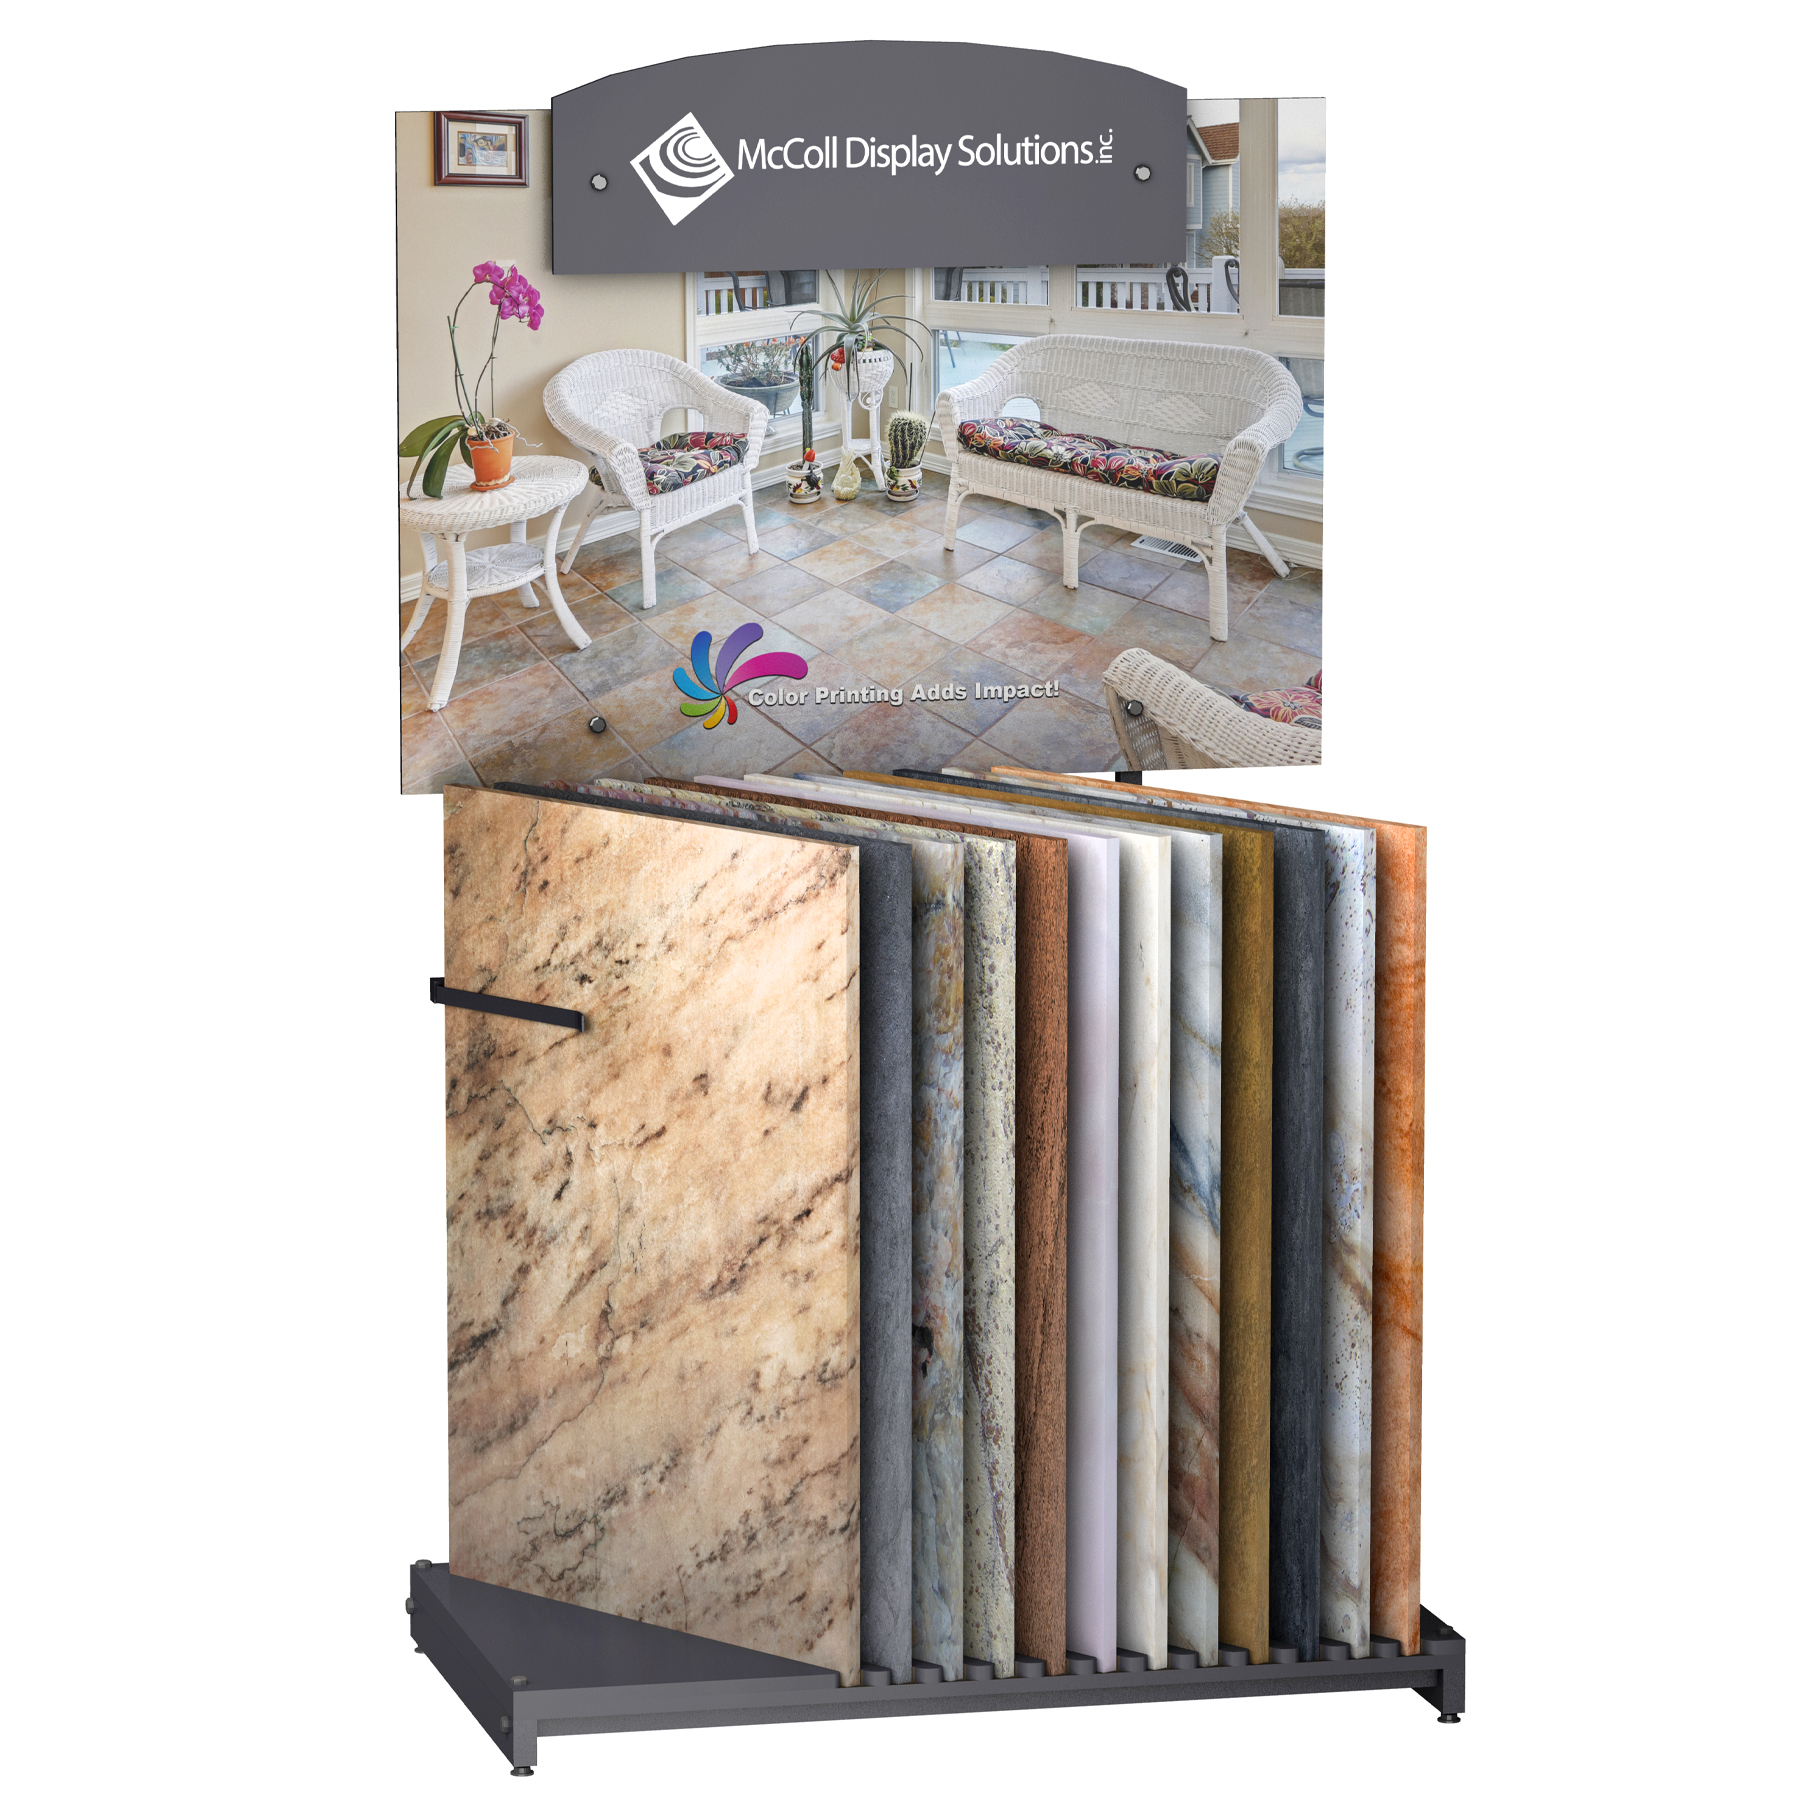 CD101 Slotted Floor Stand with Signage Displays Ceramic Tiles Marble Stone Quartz Travertine Flooring Samples